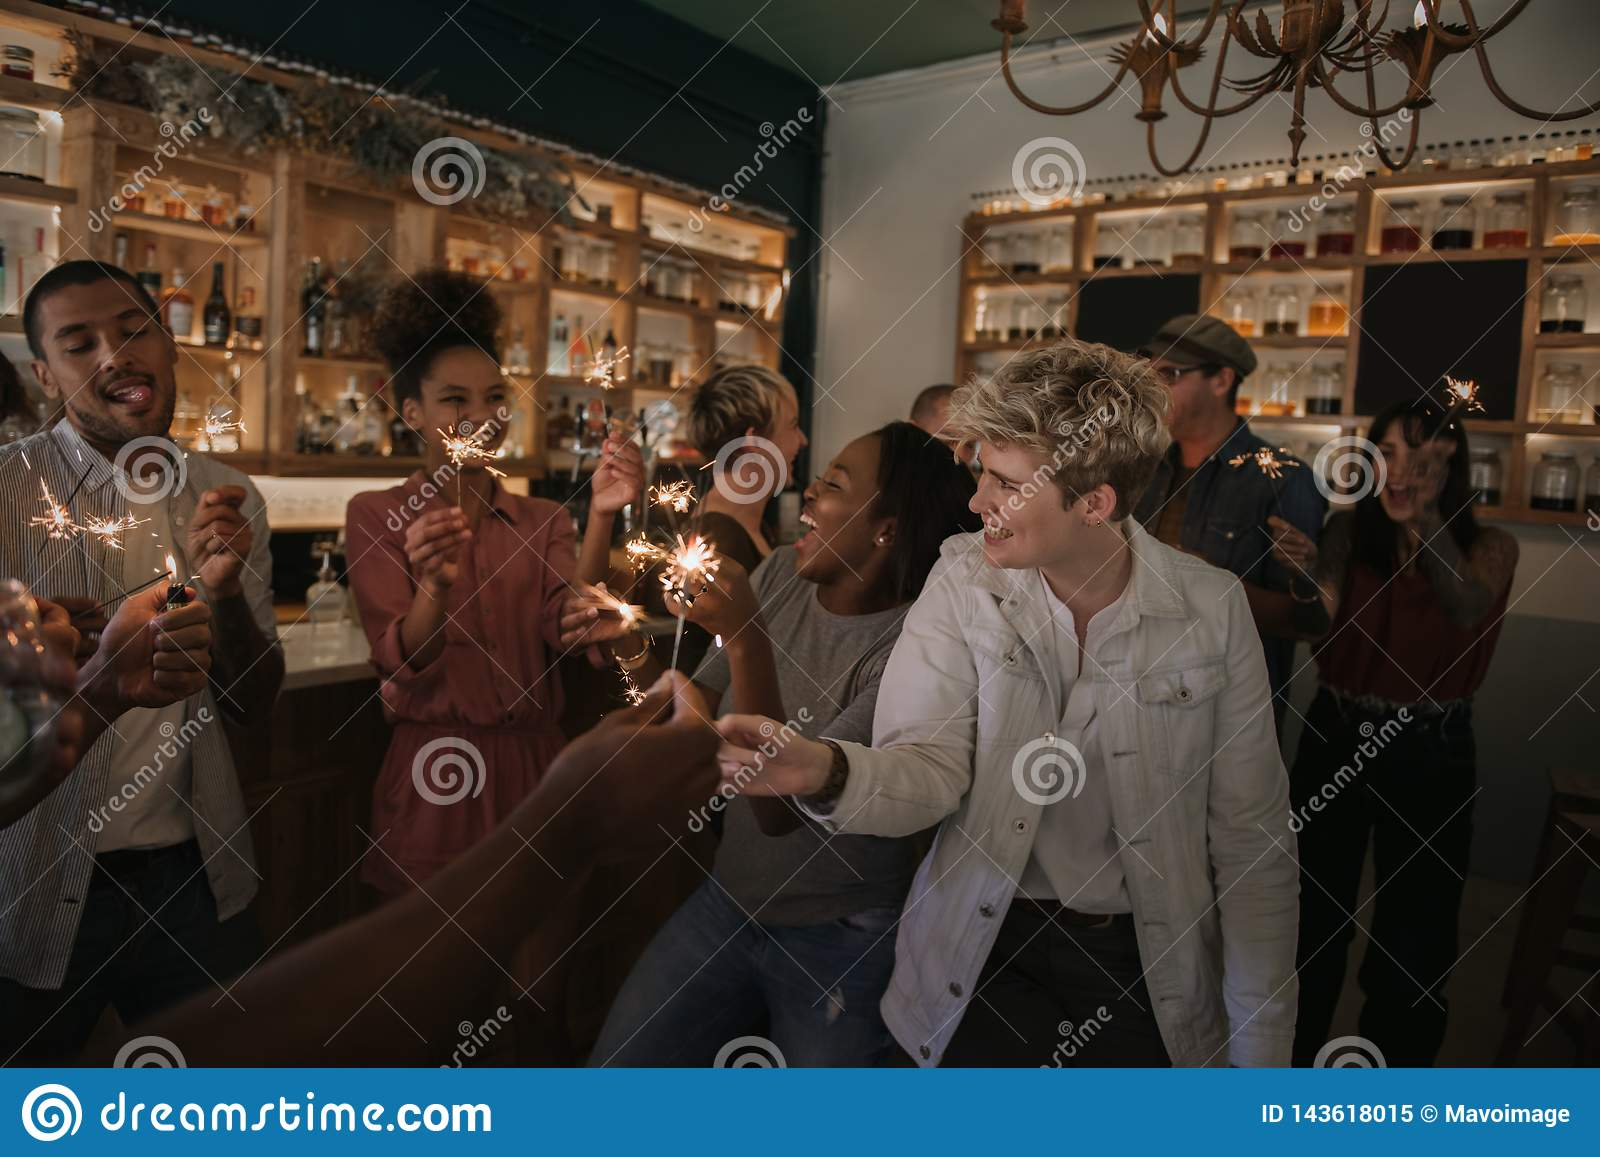 Group of friends celebrating with sparklers in a bar